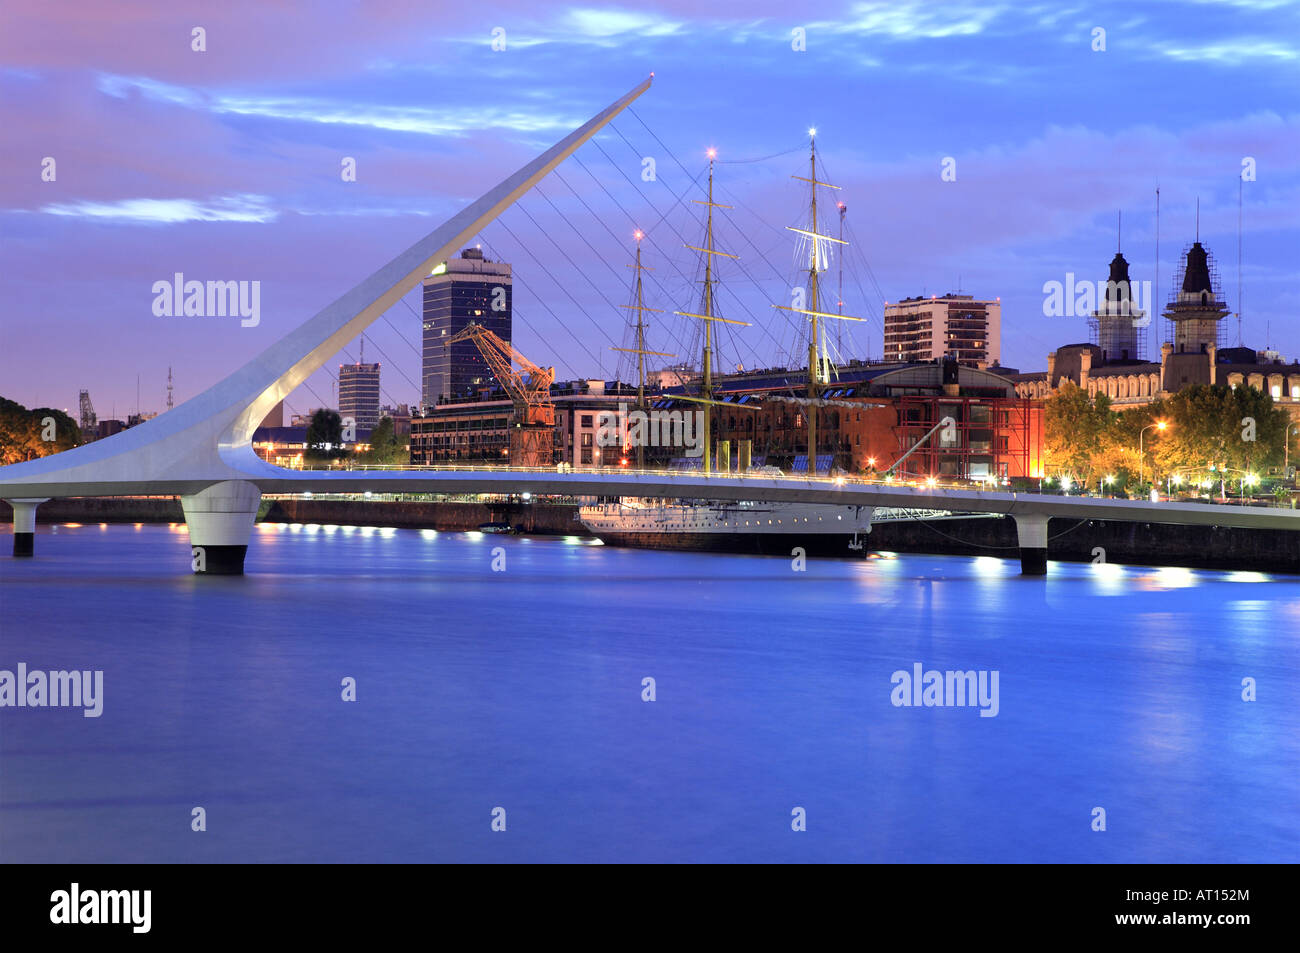 Calatrava ´ s bridge of the woman and  Sarmiento Frigate, at  Puerto Madero, Buenos Aires, Argentina - Stock Image